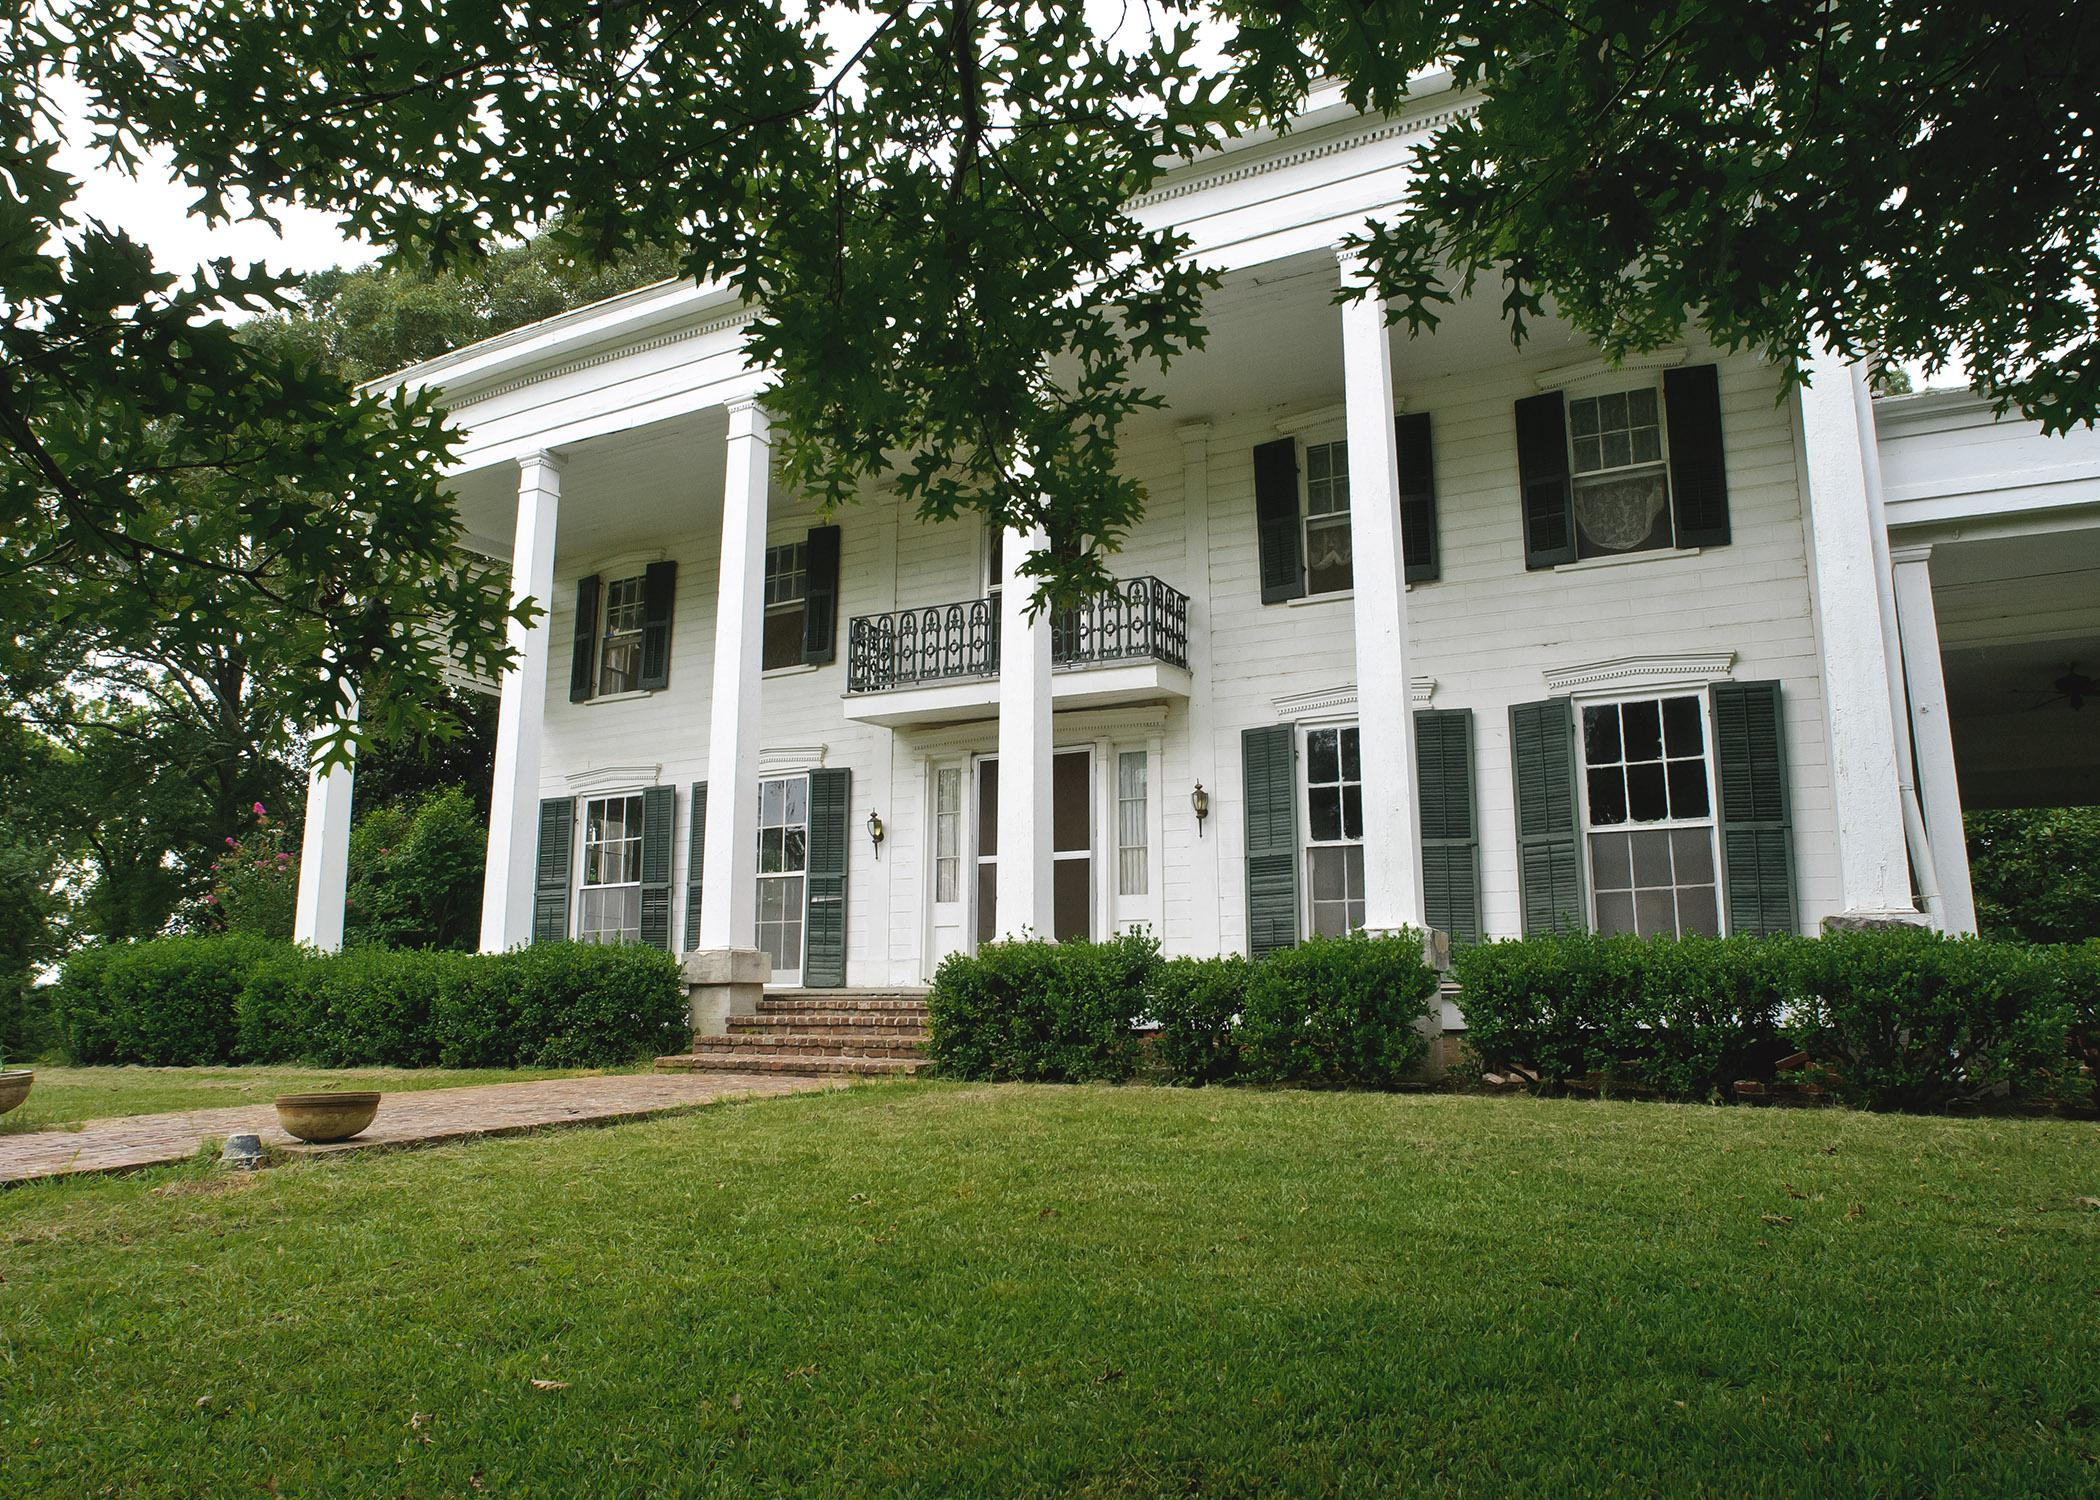 The historic Cotesworth home in Carroll County is a significant part of the Highway 82 heritage corridor from Greenville to Columbus, Mississippi. (File photo by MSU Ag Communications/Kevin Hudson)